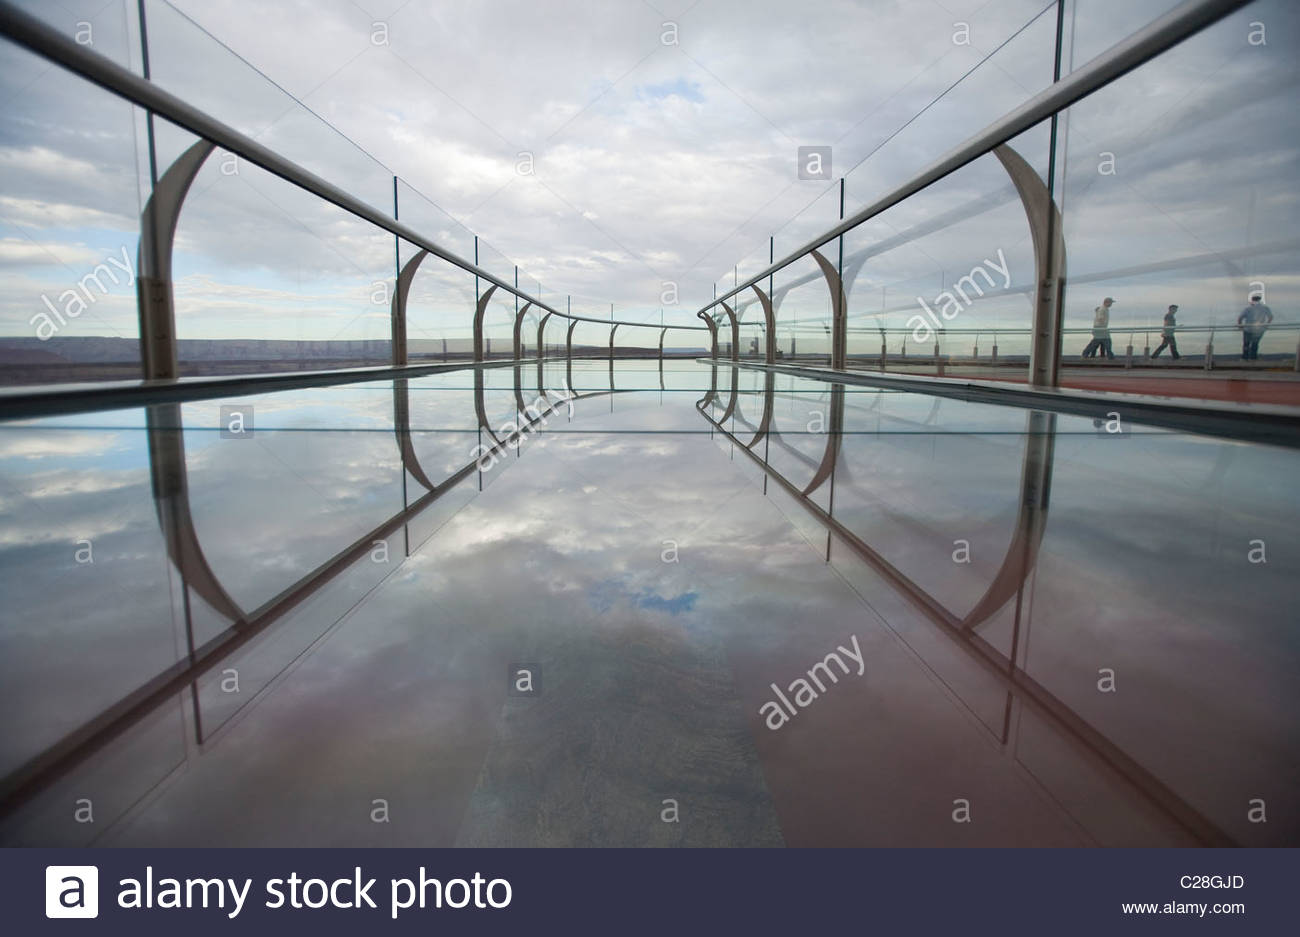 A View Of The Skywalk Over The Grand Canyon Stock Photo